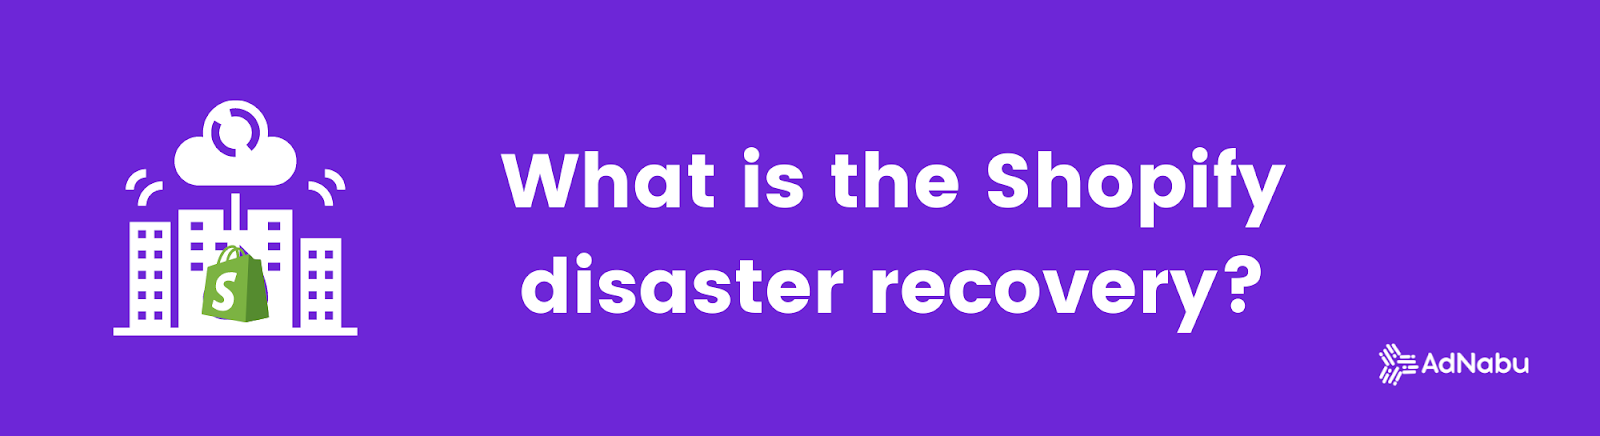 Shopify disaster recovery